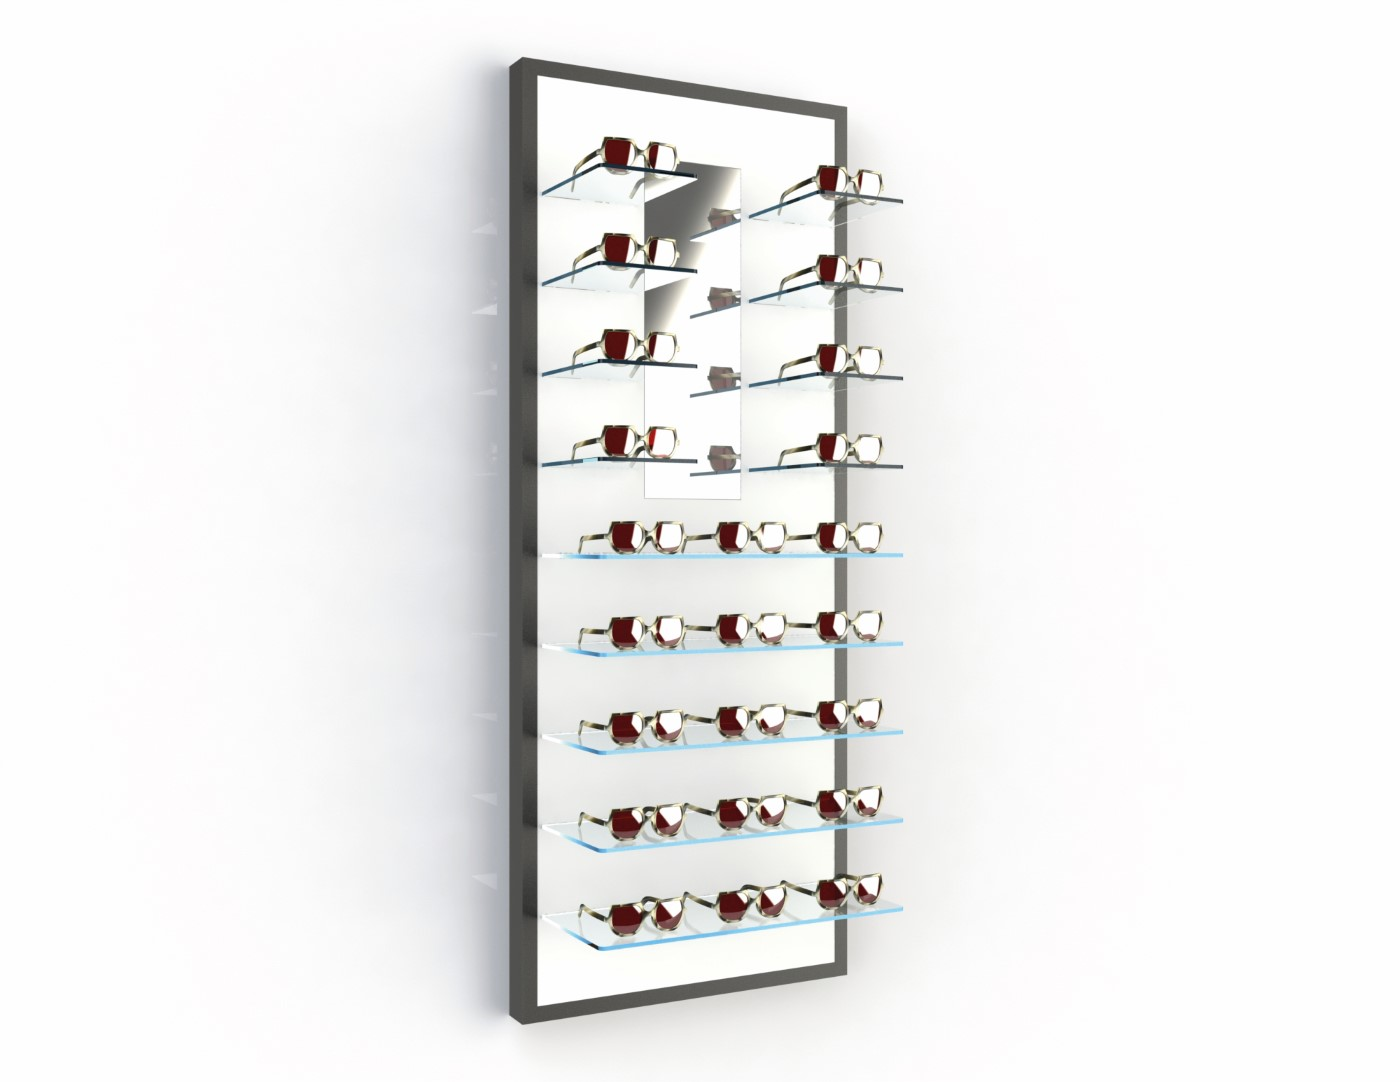 <strong>#58121B</strong><br>13x 6mm crystal clear shelves<br>Mirror<br>23 Frames